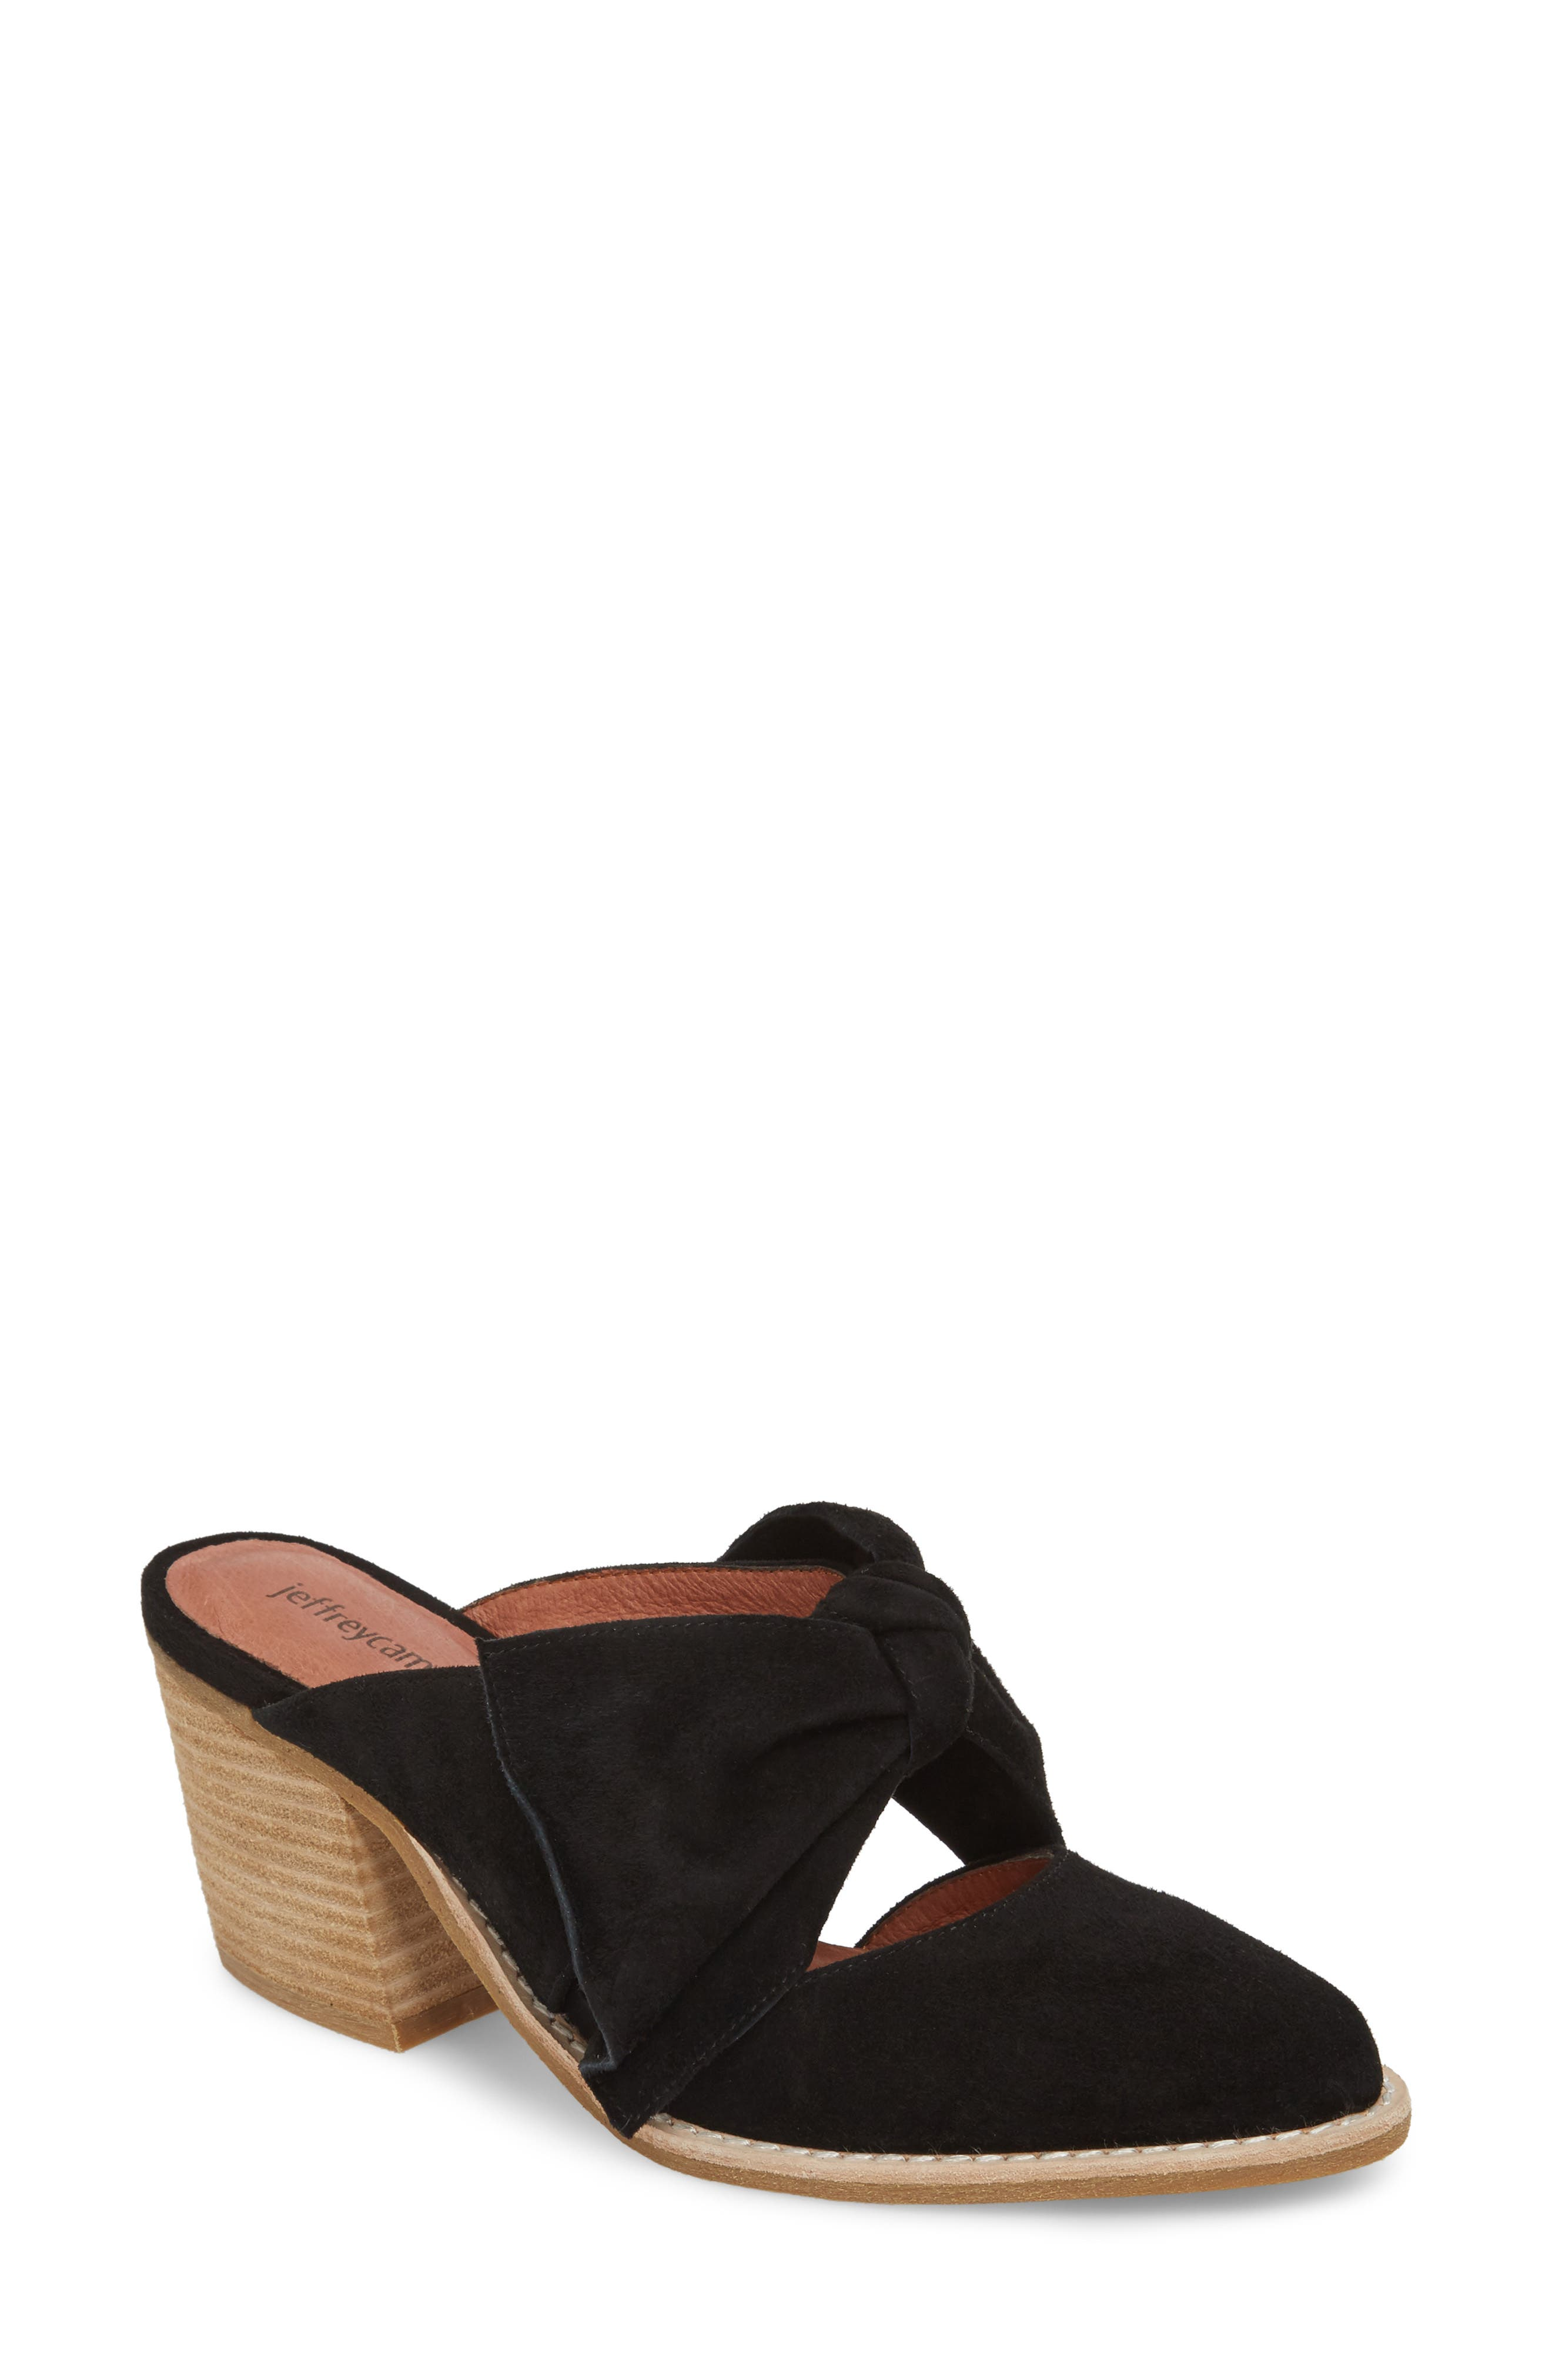 CYRUS KNOTTED MARY JANE MULE